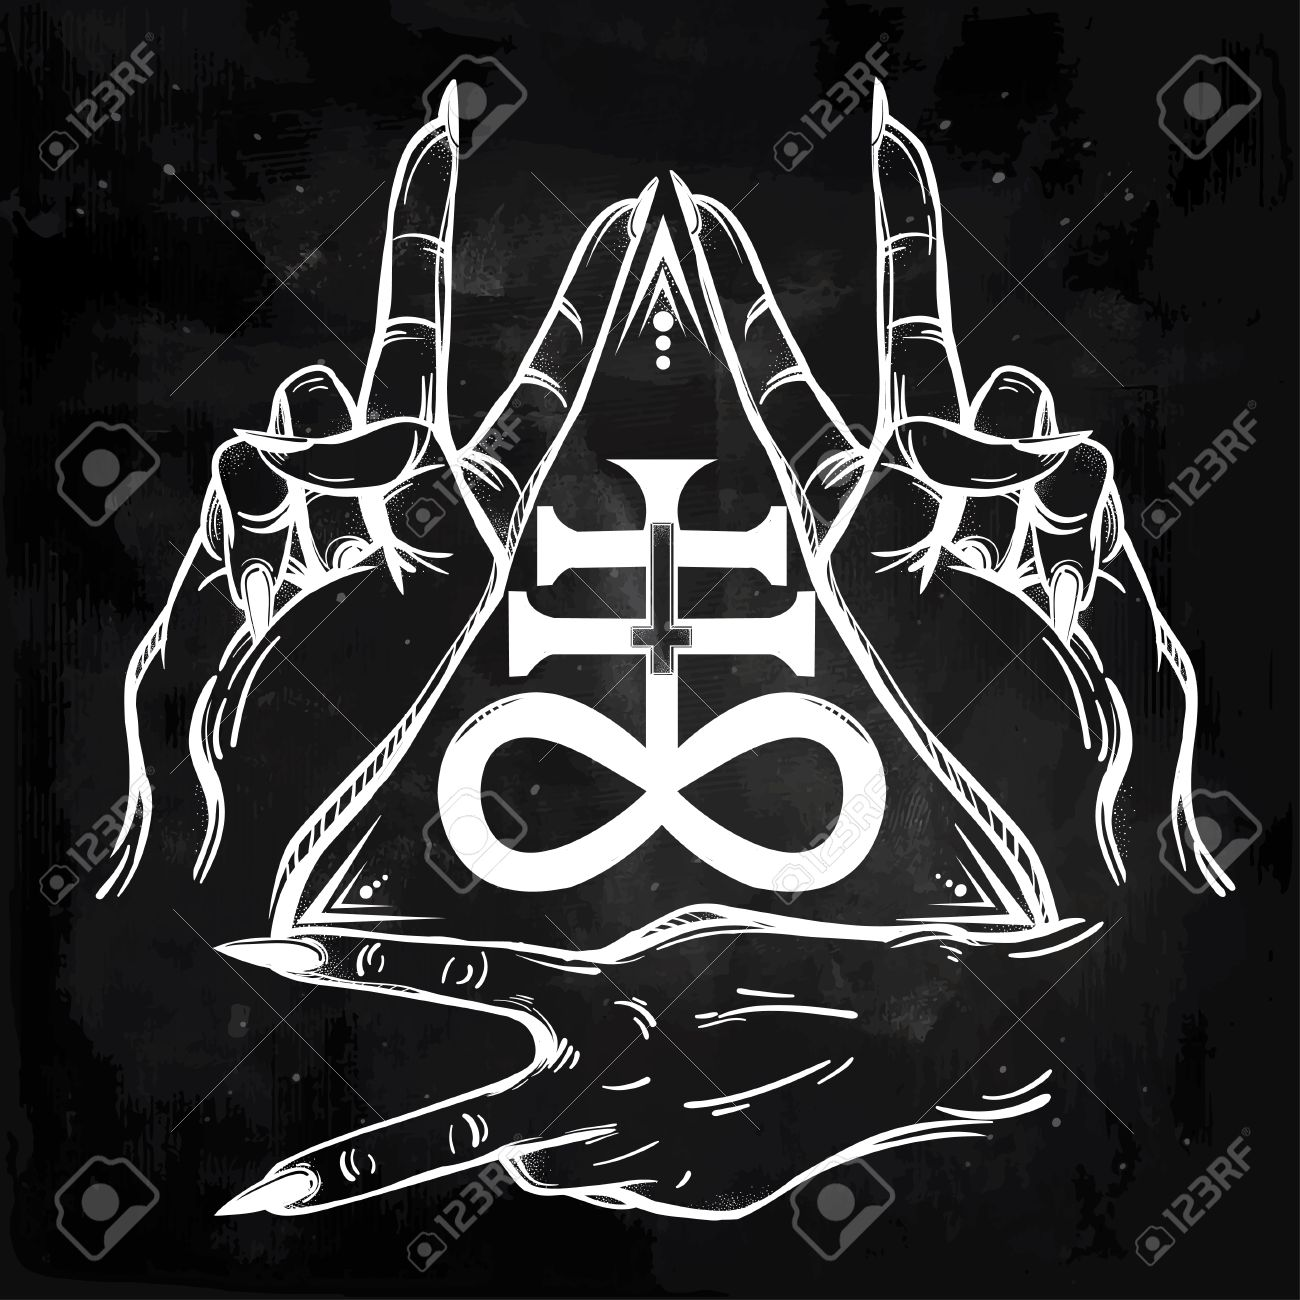 V sign hand flash tattoo fingers showing two forming a figure v sign hand flash tattoo fingers showing two forming a figure with the satanic cross biocorpaavc Choice Image